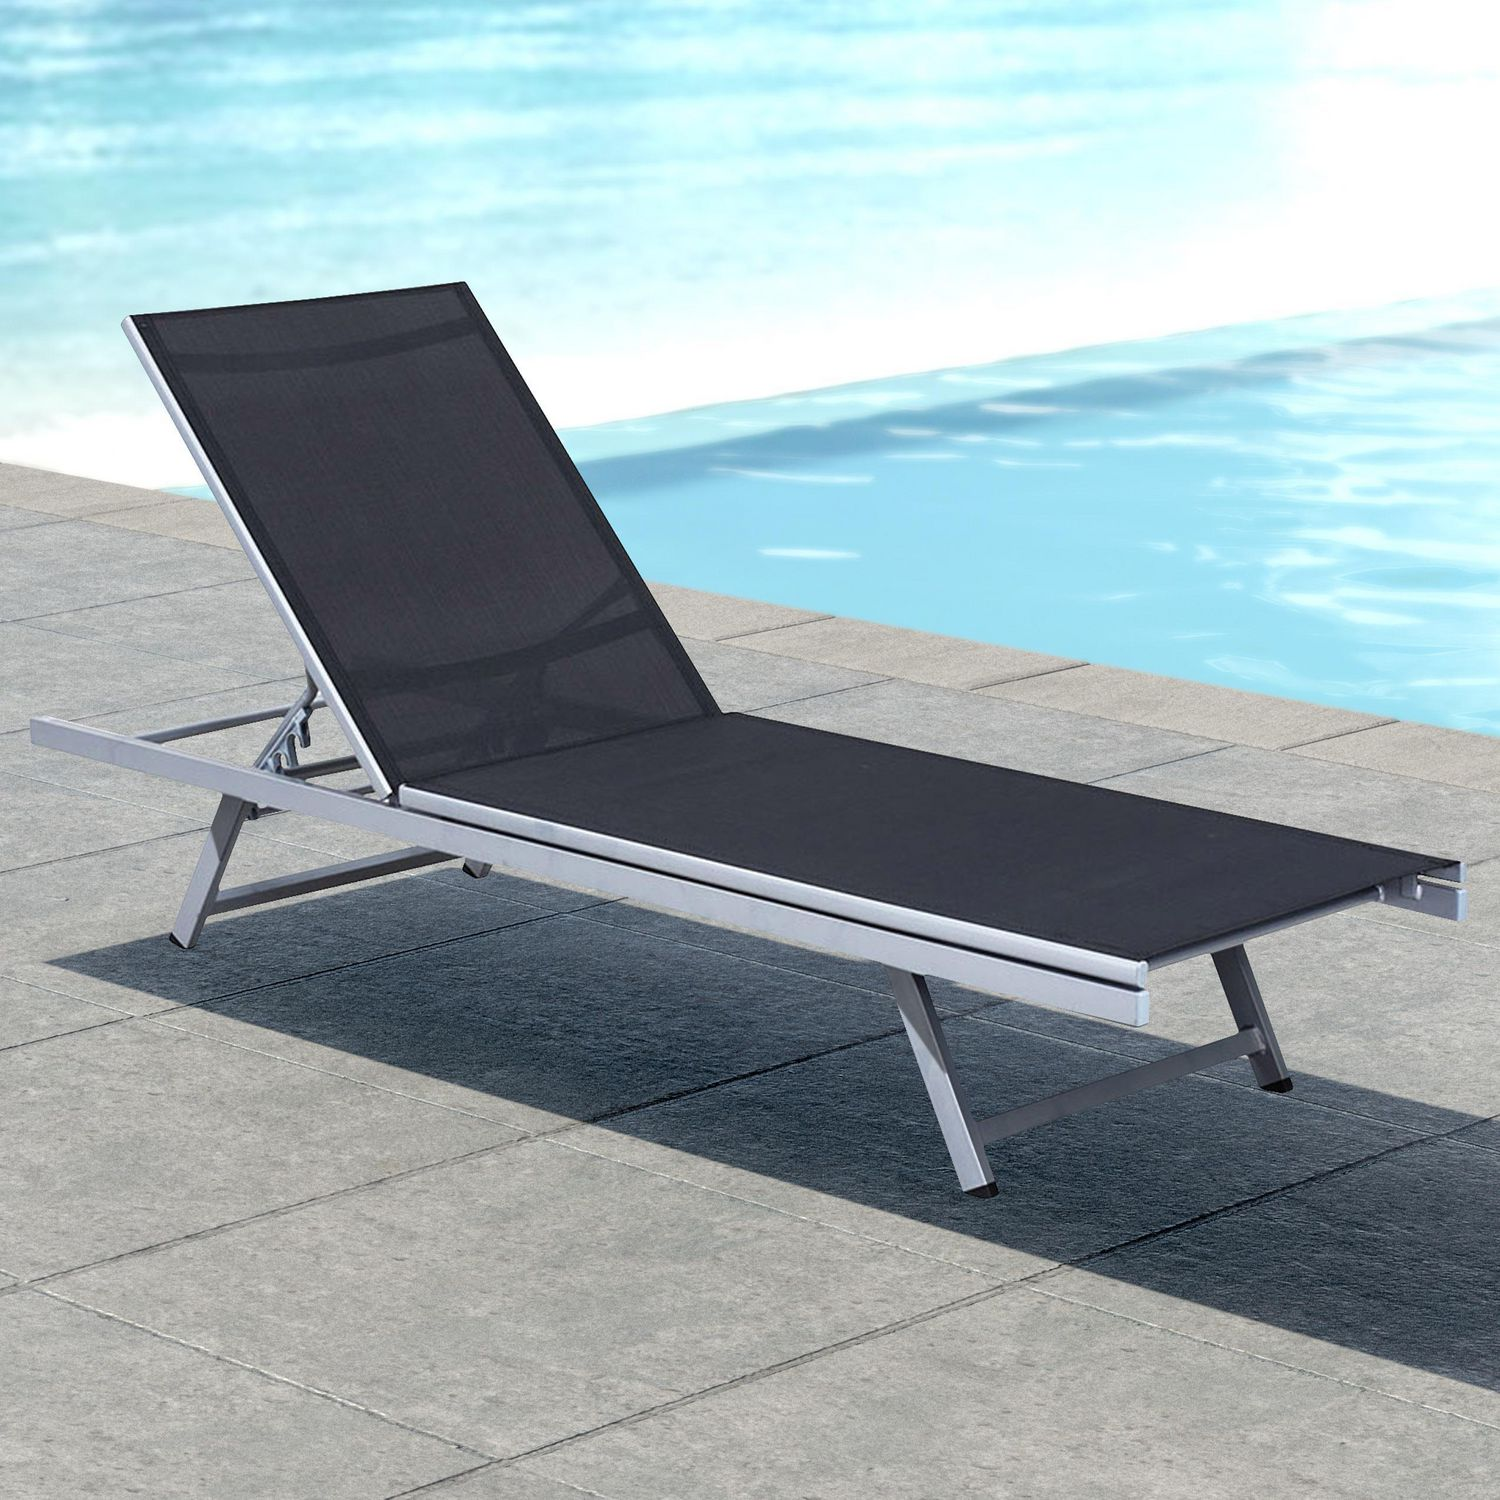 Buy Chaise Lounges & Patio Chairs line